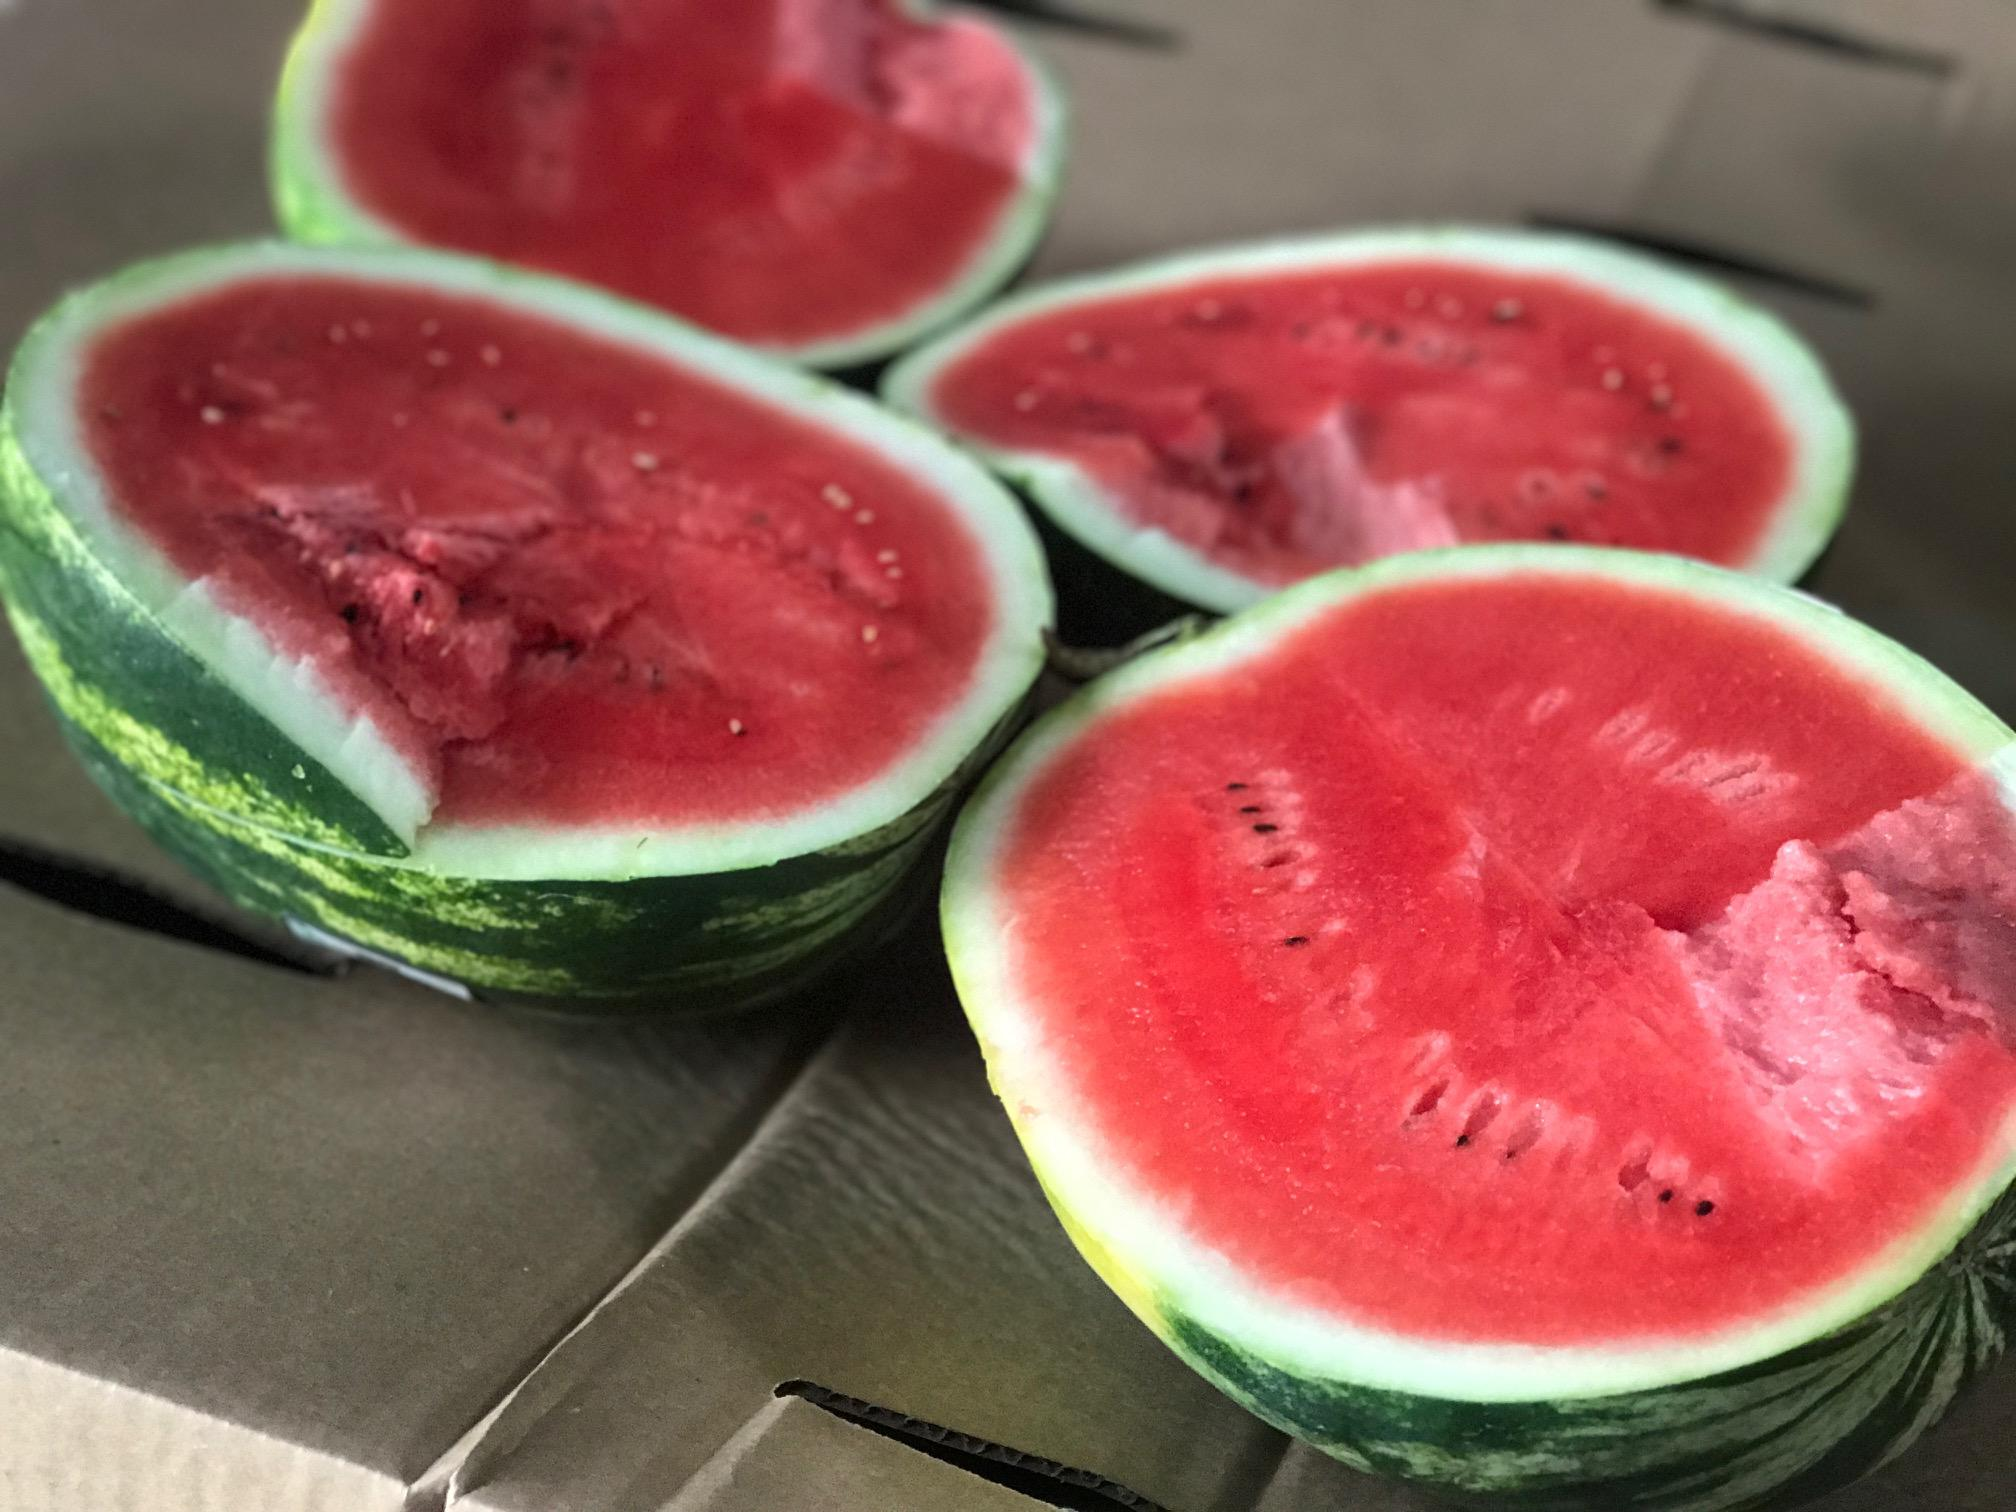 Niles couple donate watermelons to food pantries with hidden message.